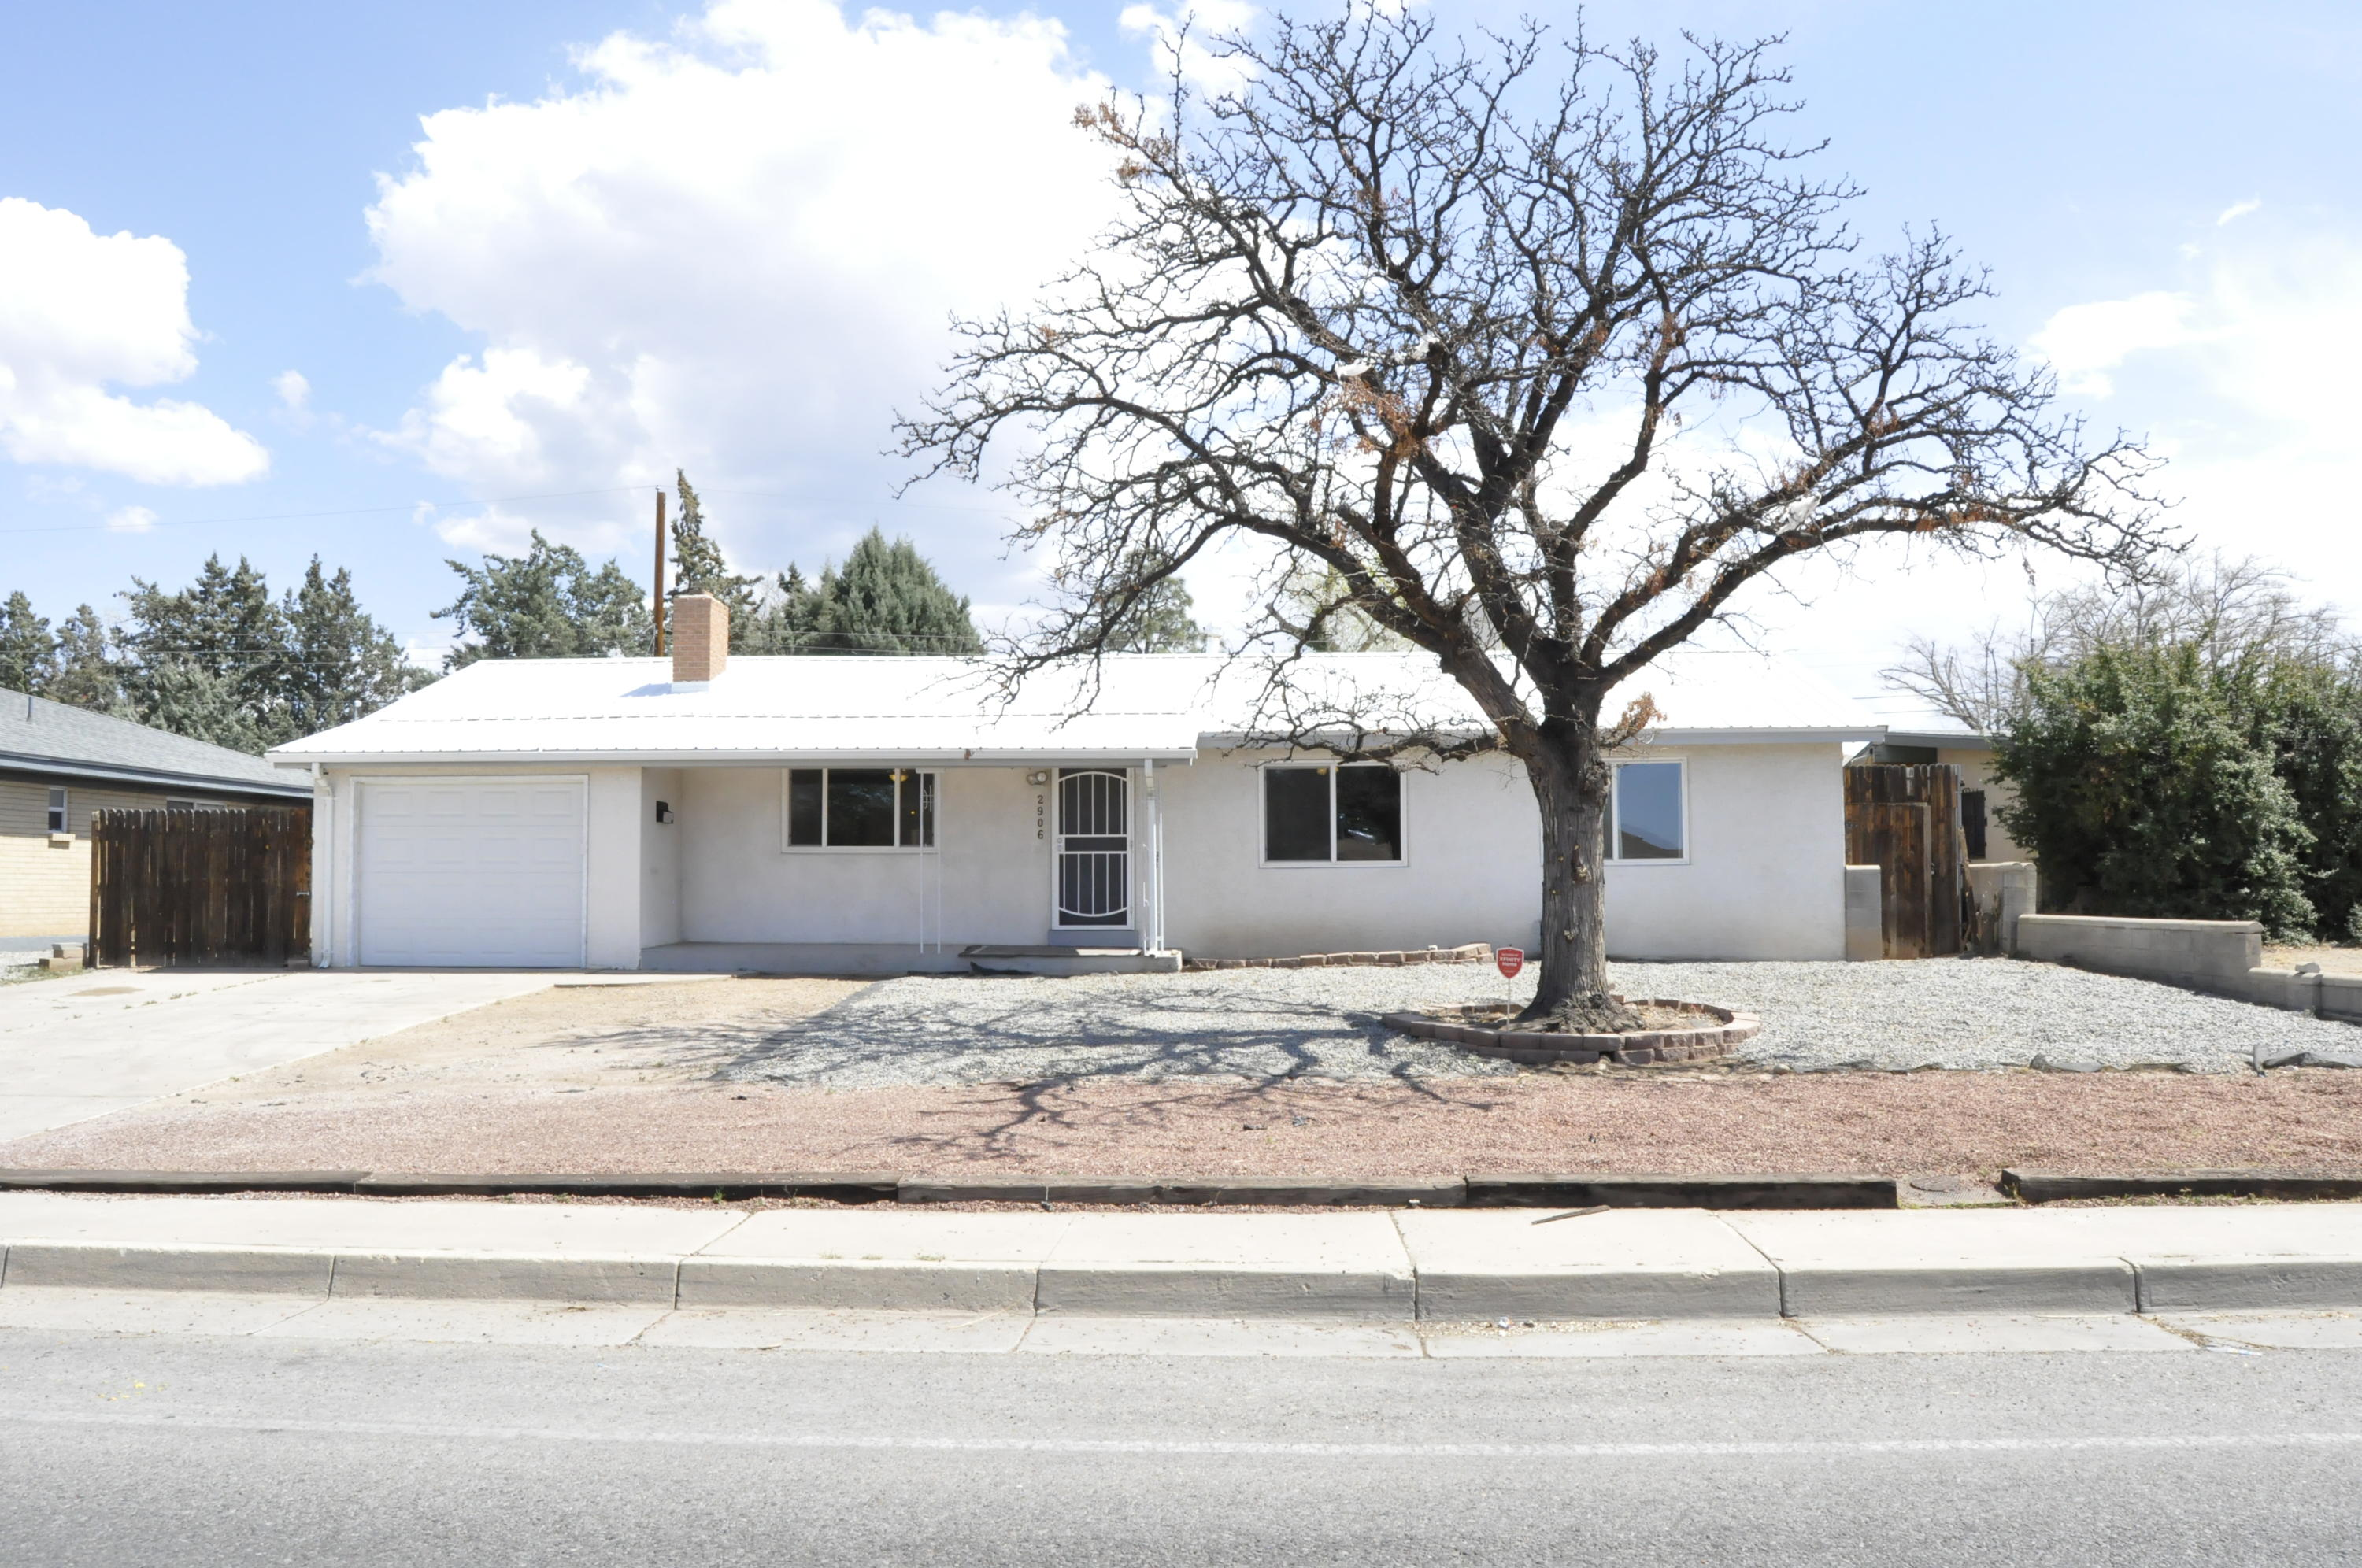 Wonderful 3 Bedroom Mossman home located in Uptown.  Refinished hardwood floors. New tile in wet areas. New windows in 2016. New roof and  Master Cool in 2016. New electrical system in 2017. New furnace and garage door in 2018. New water heater in 2020.  Oversize garage accommodates two vehicles.  Backyard access and RV parking.  Come have a look!!